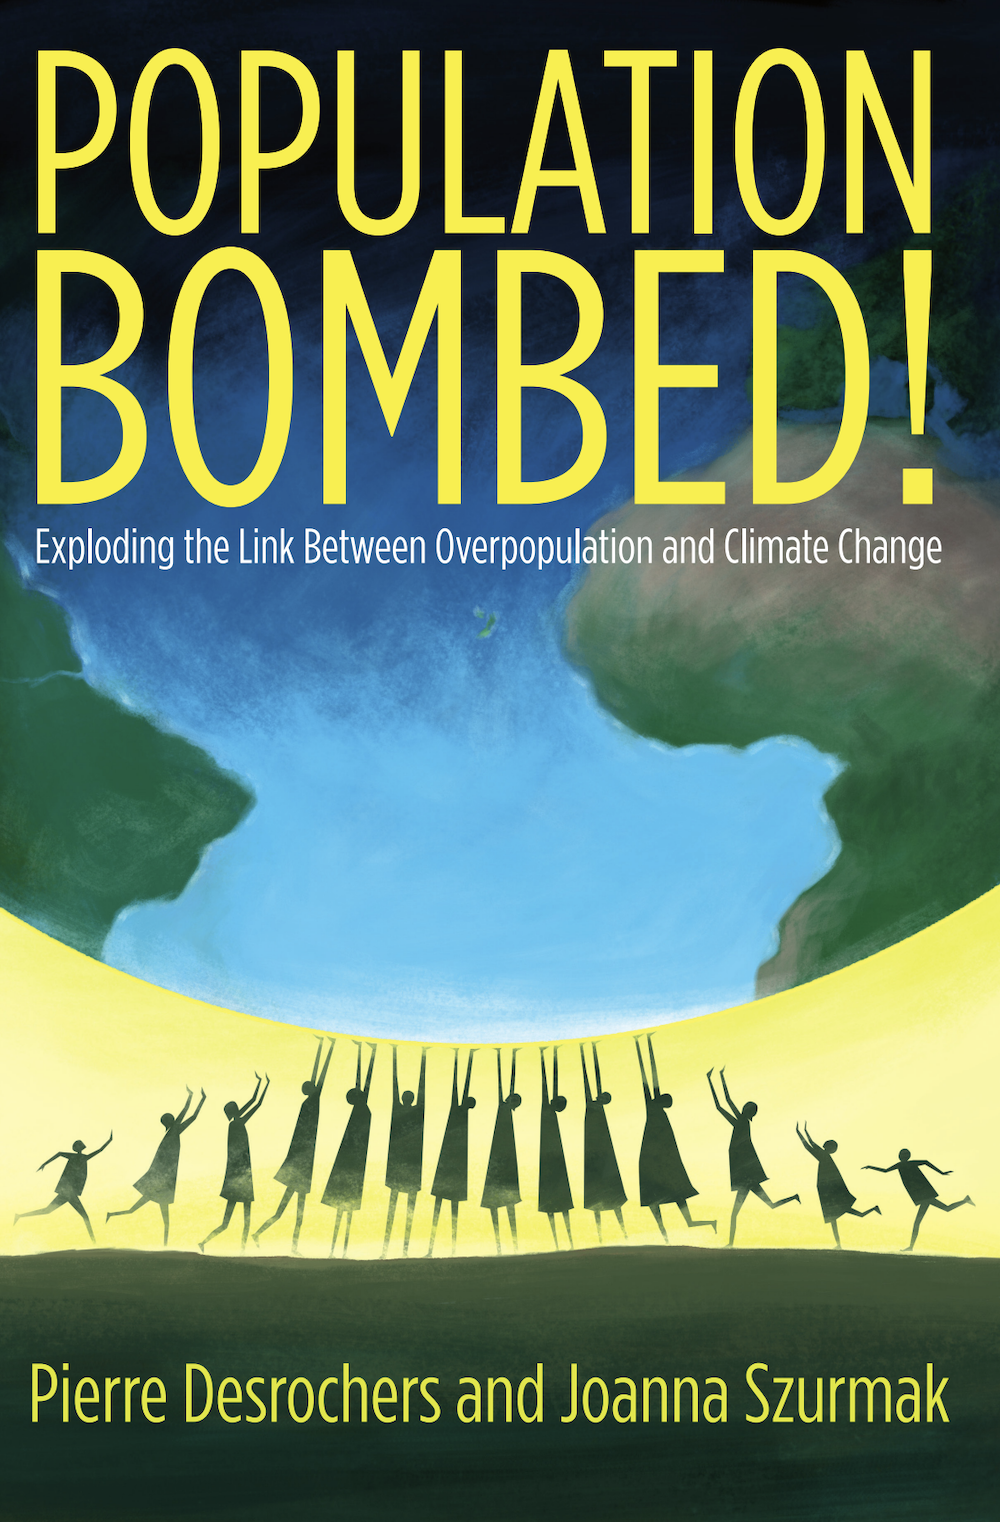 Population_Bombed_cover.png